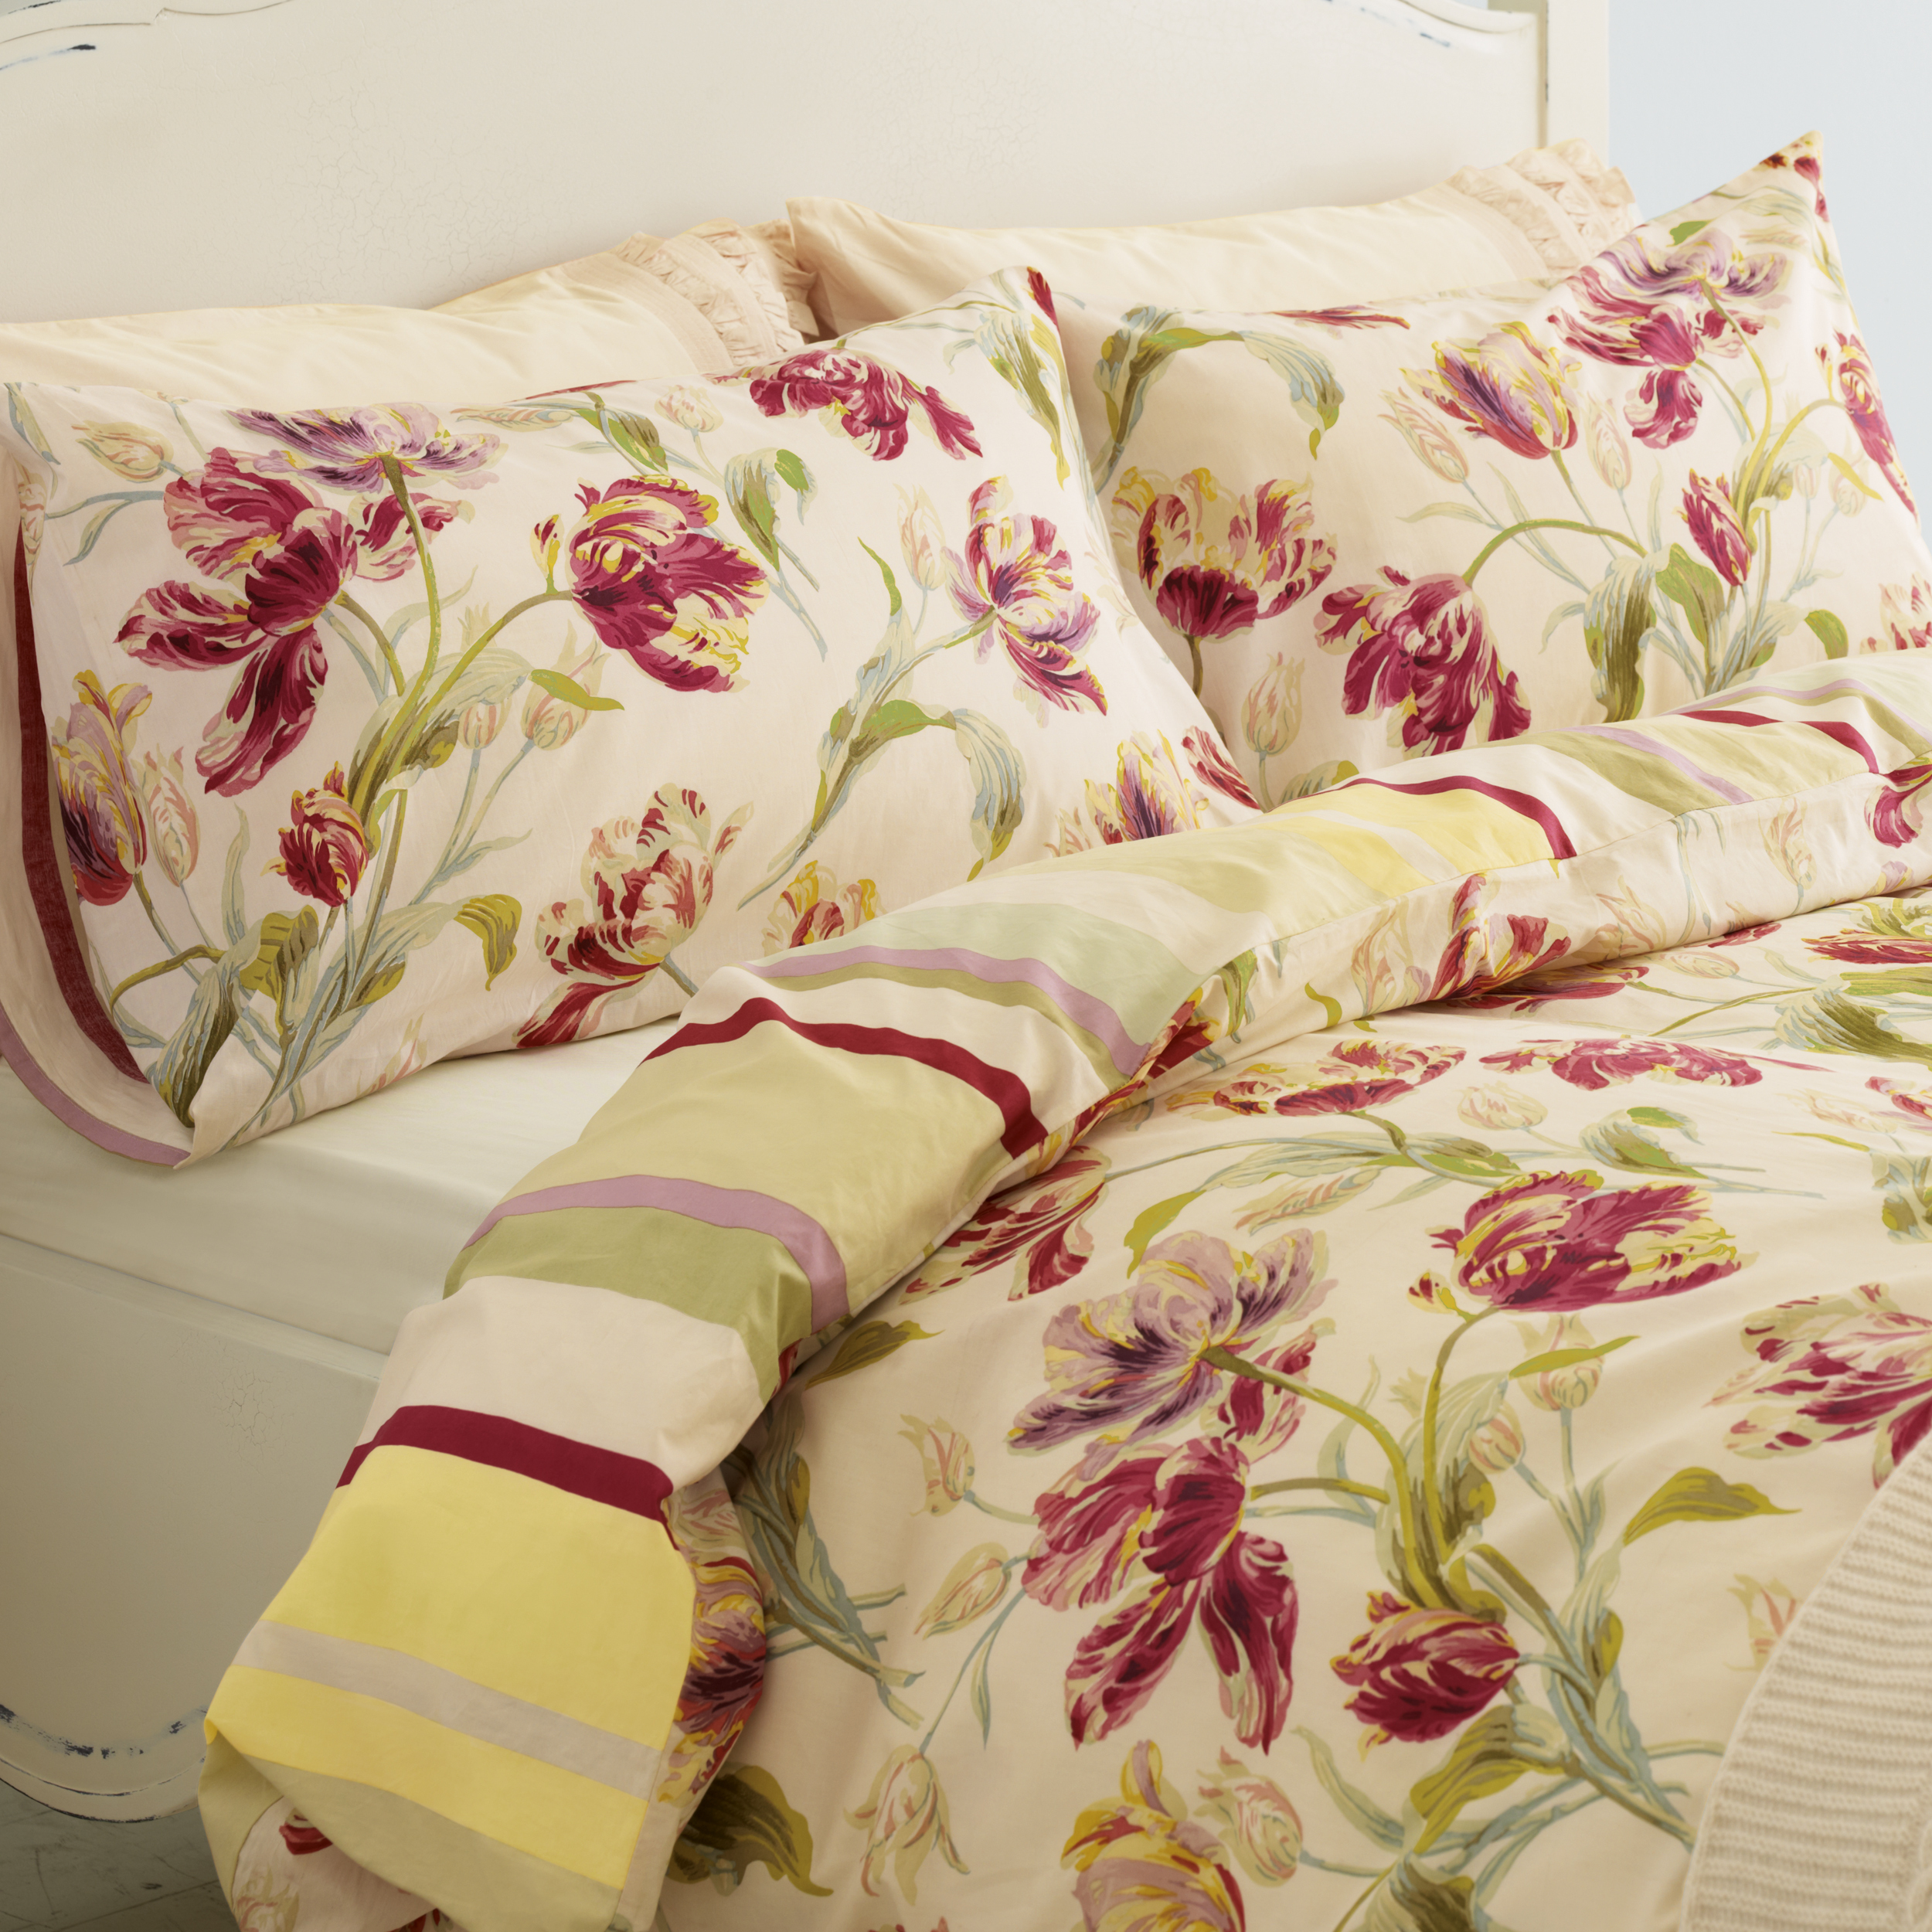 charming laura ashley bedding in cream with flowers motif for bedding ideas